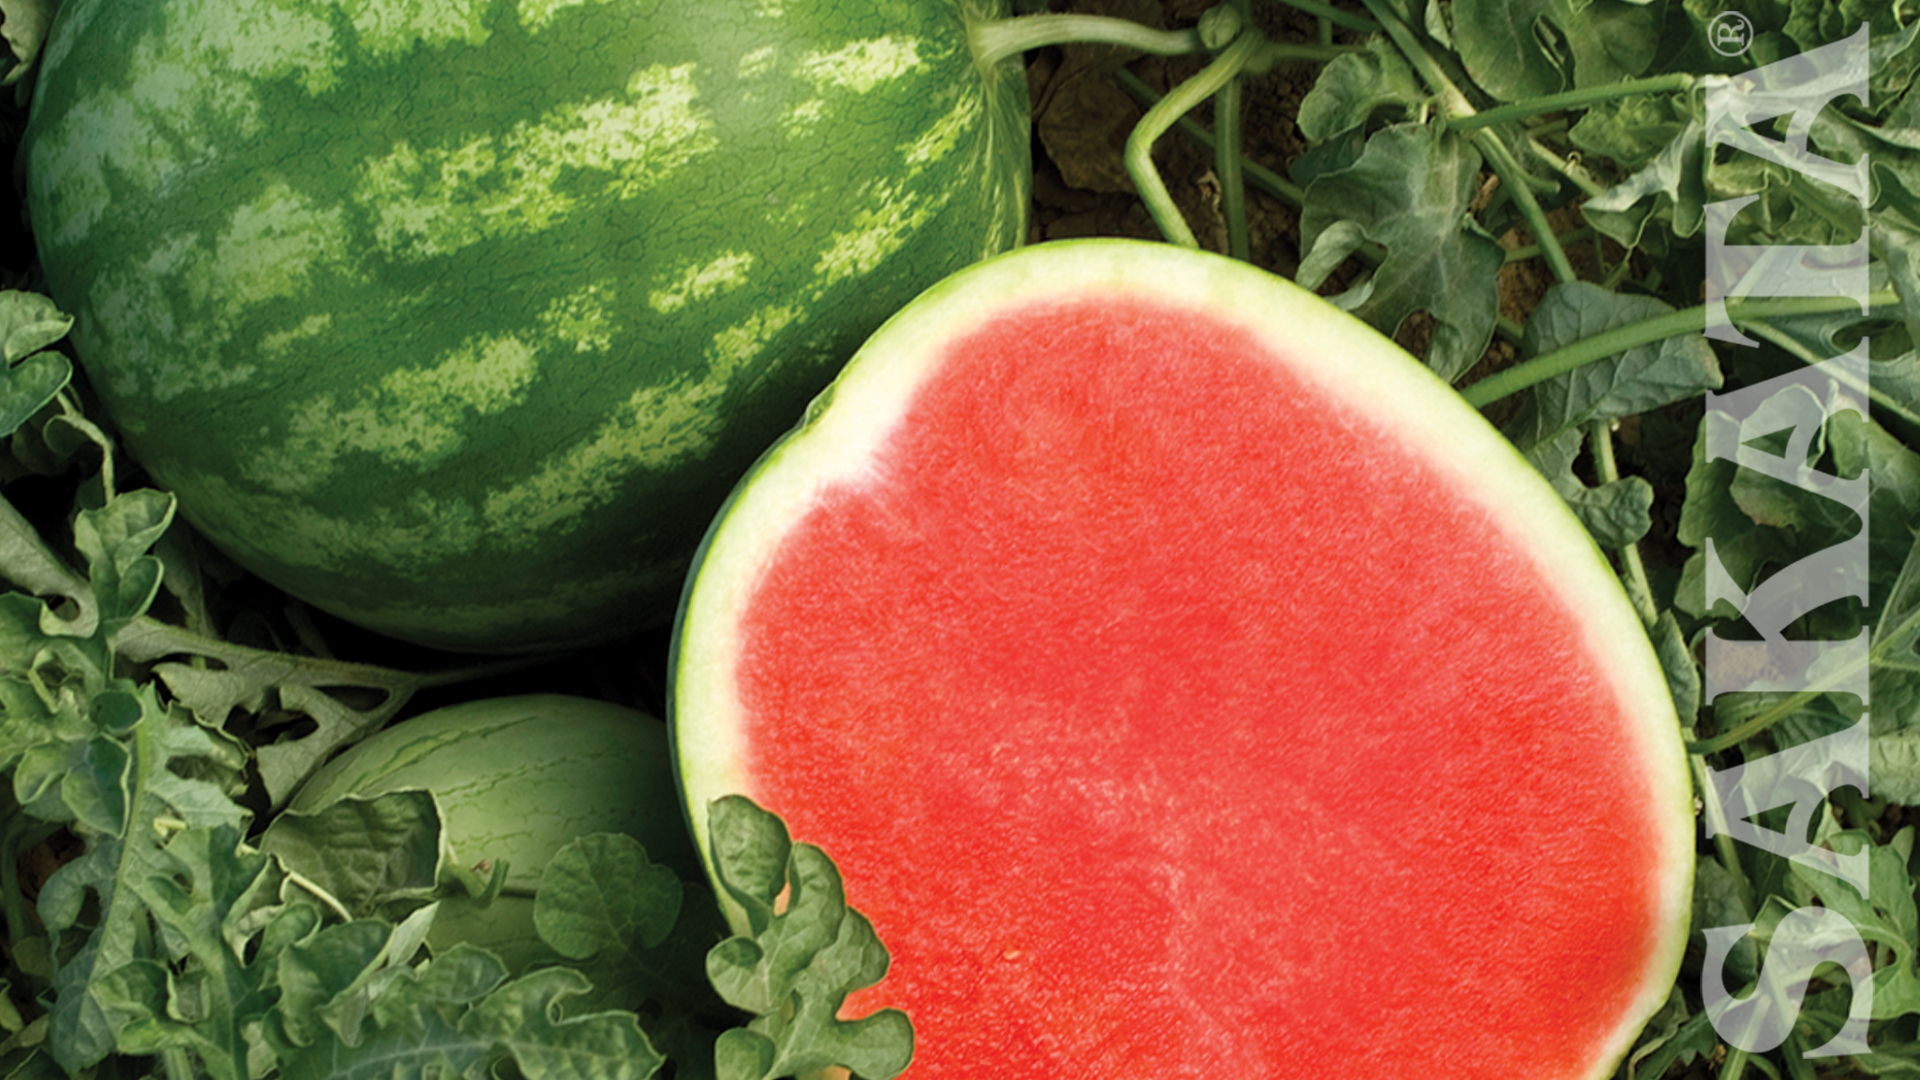 watermelon wallpapers high quality download free